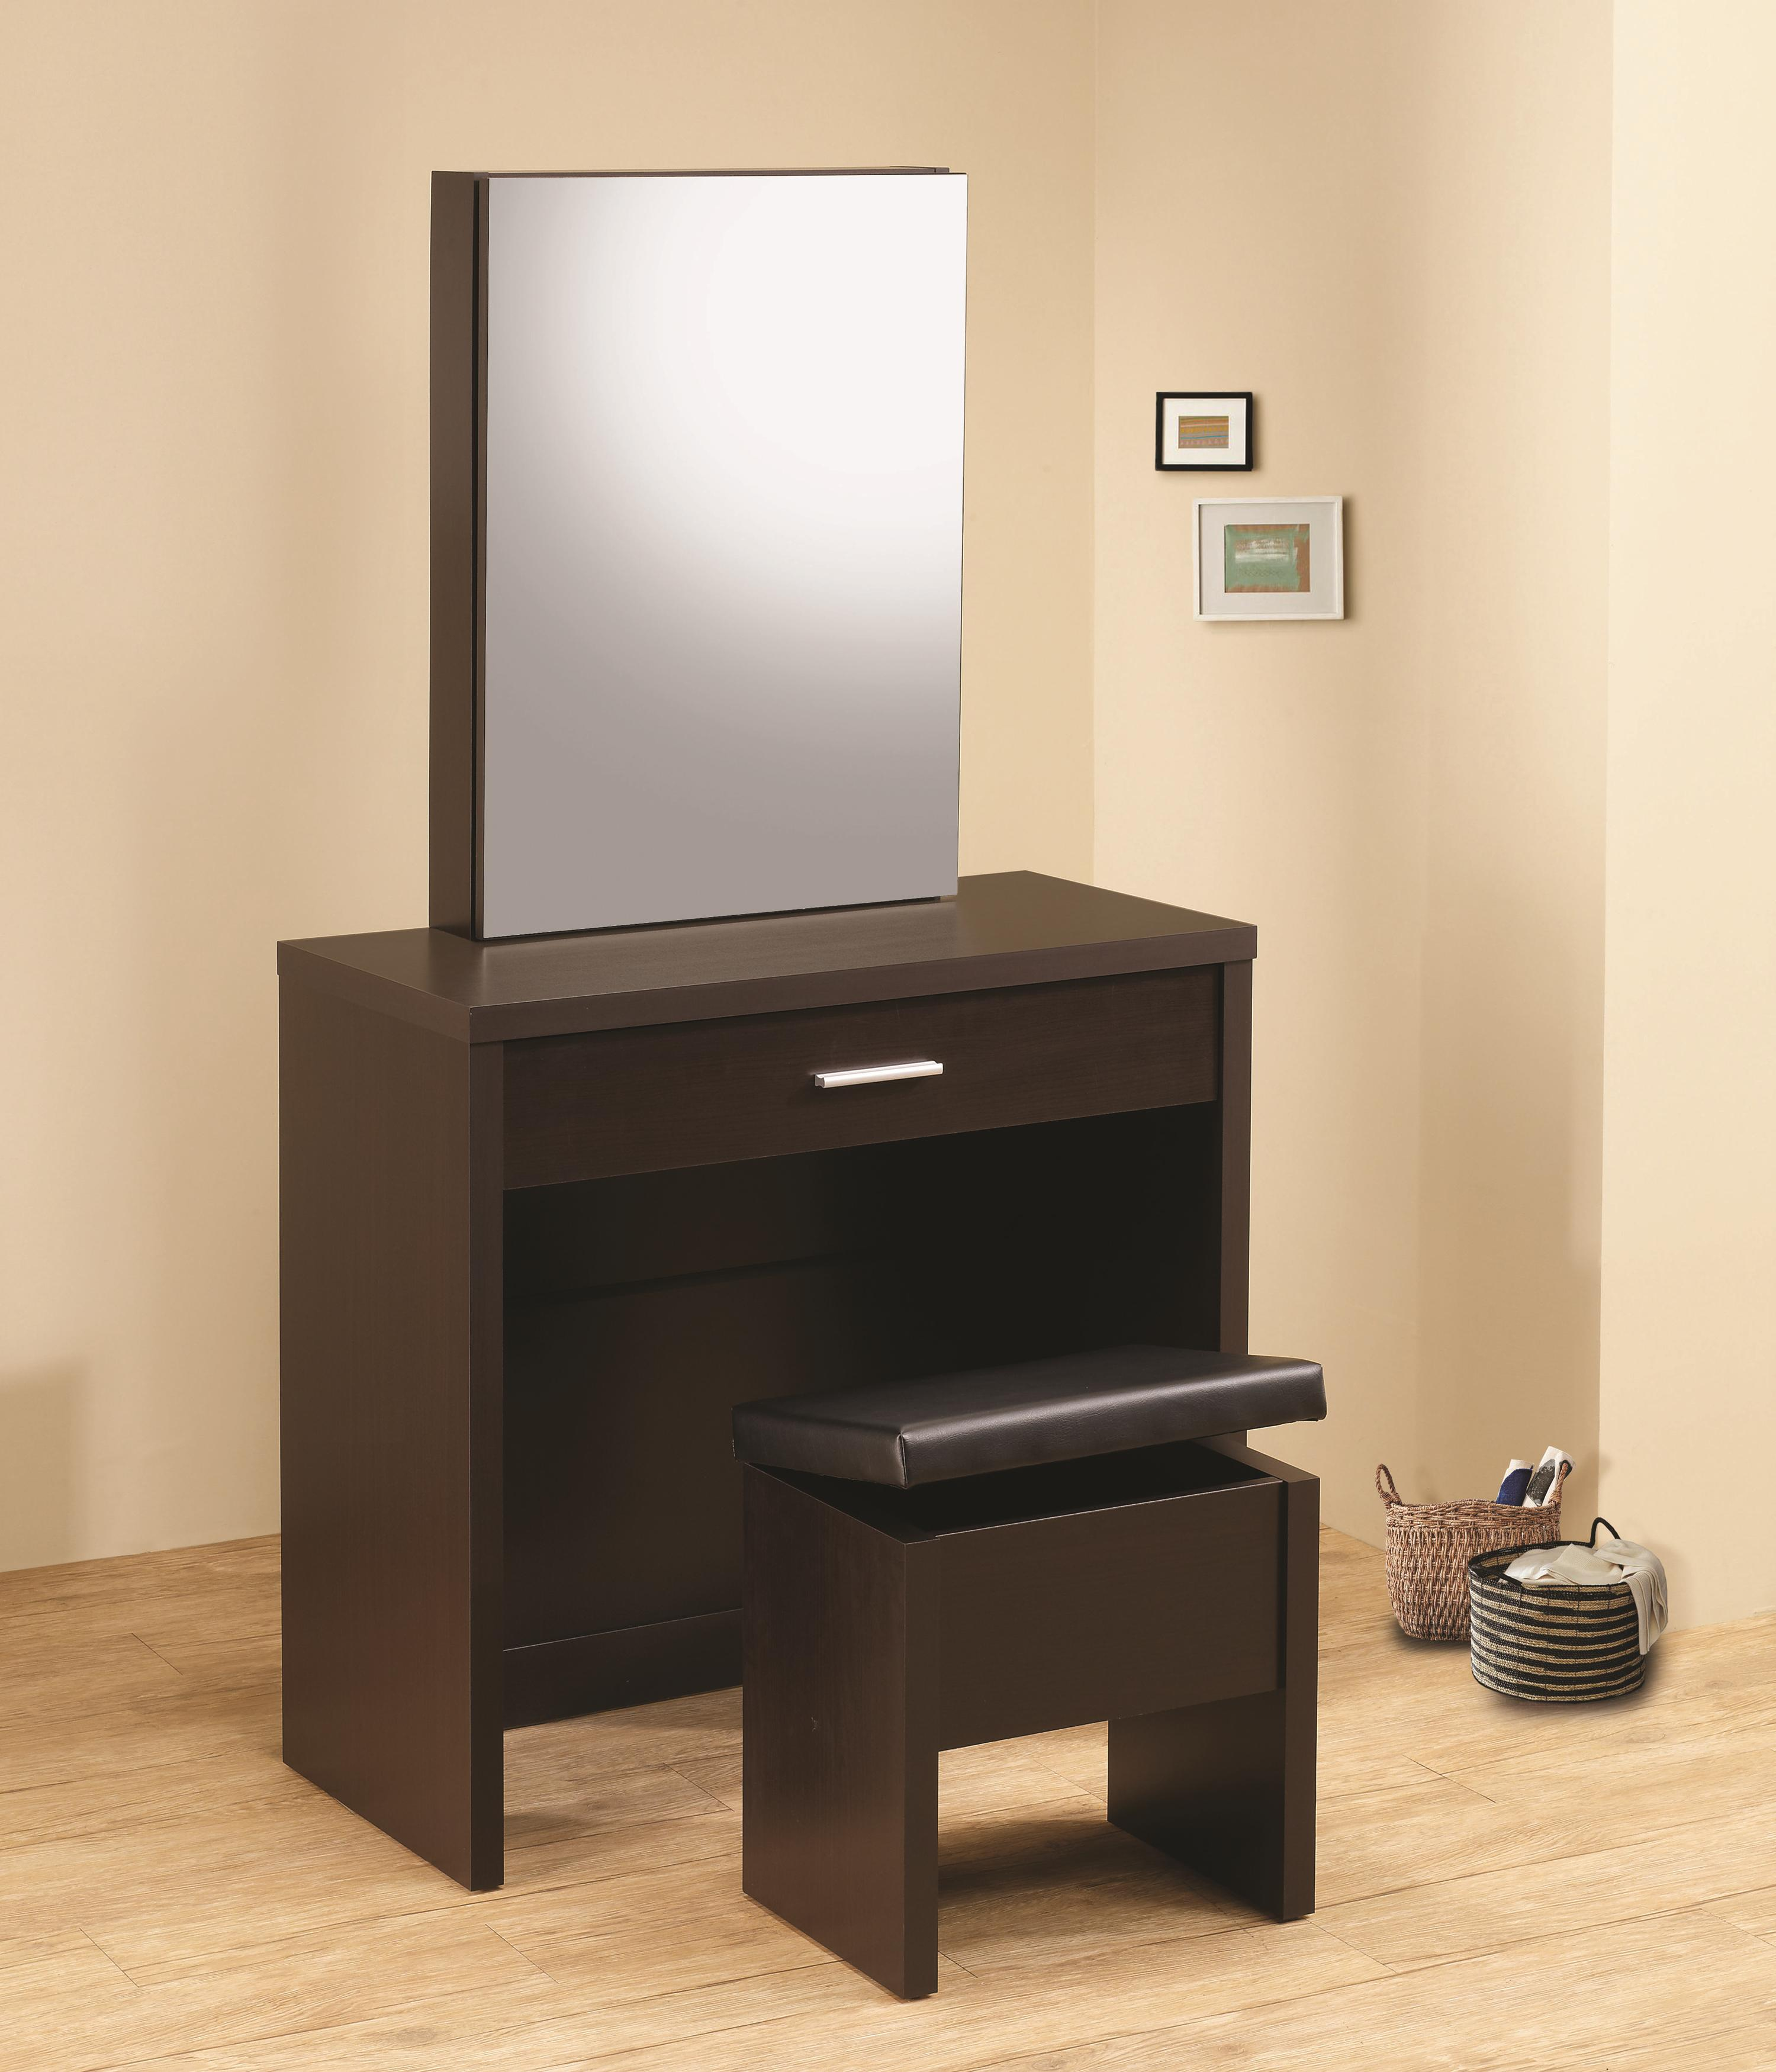 Coaster Vanities Vanity Set - Item Number: 300289